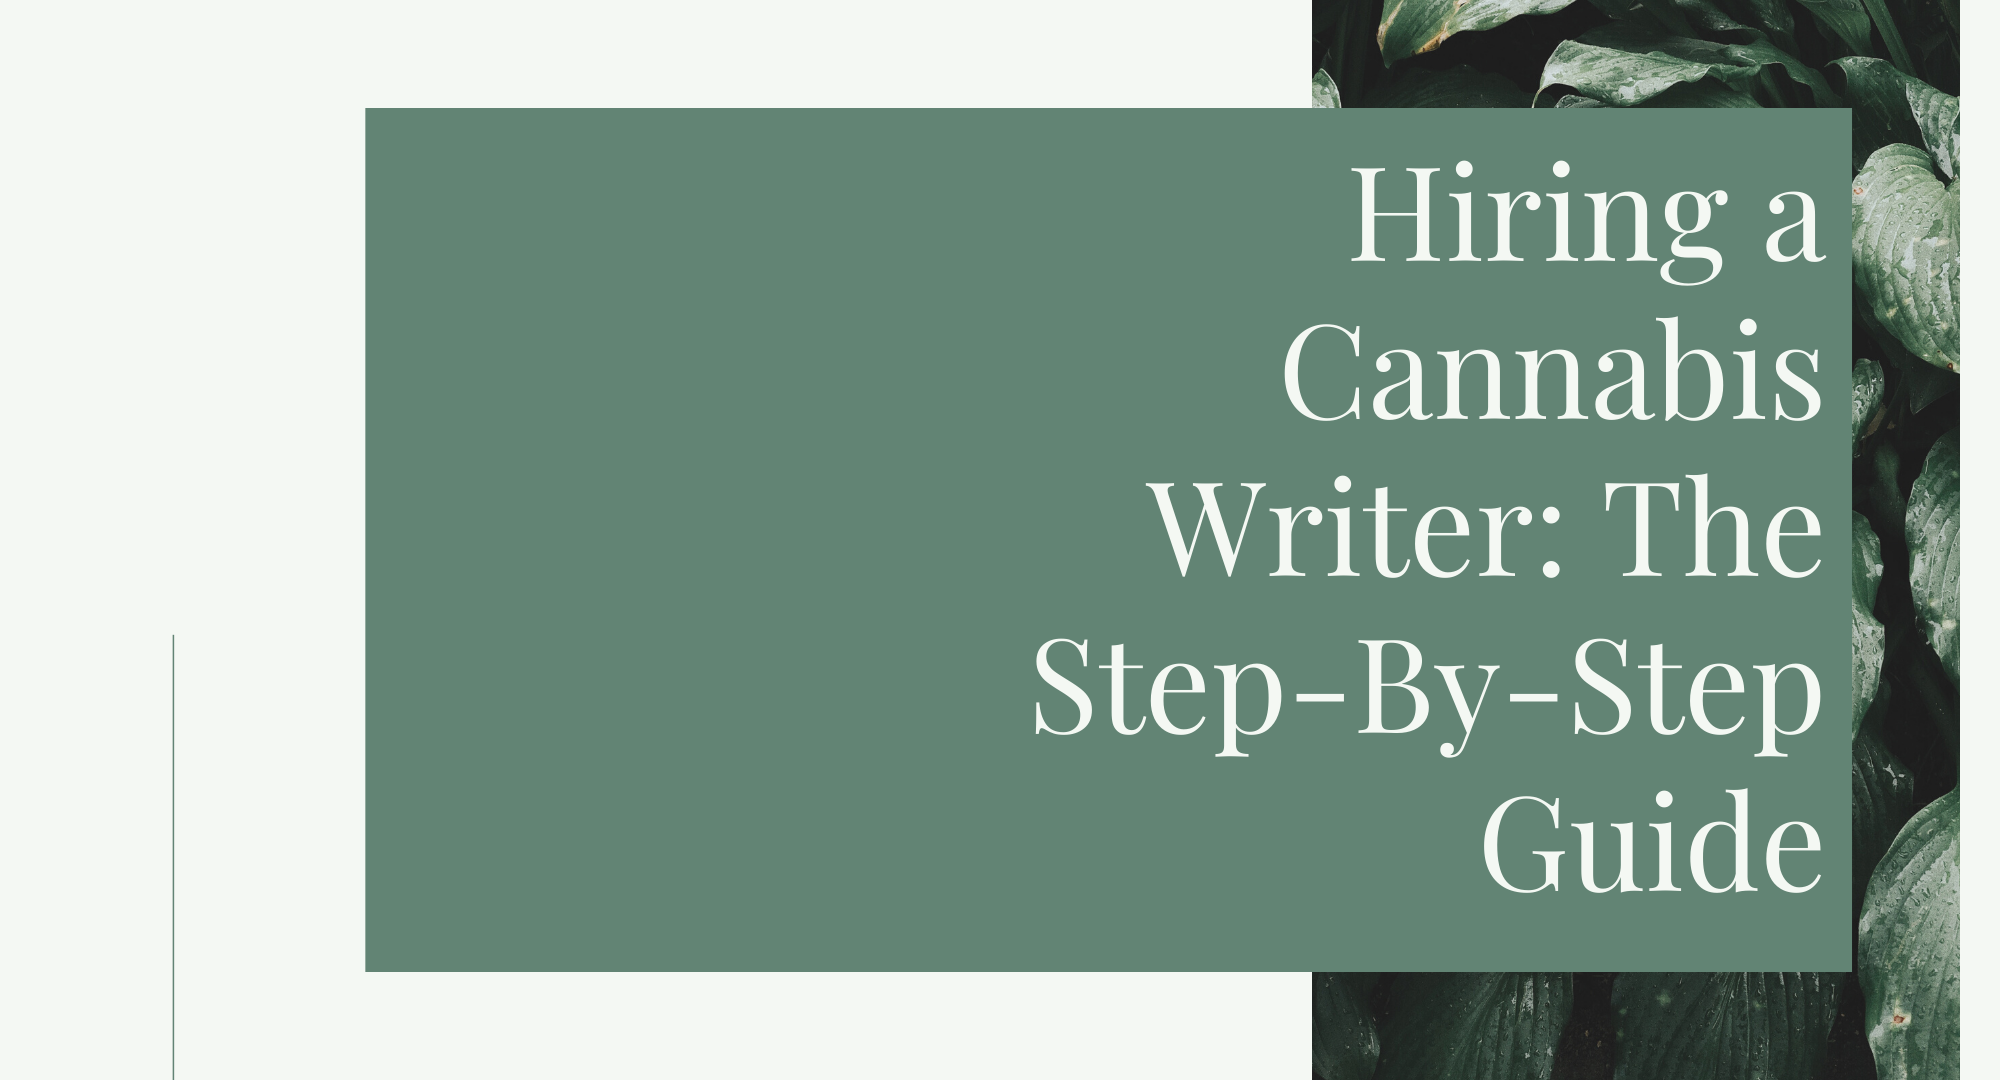 Hiring a Cannabis Writer: The Step-By-Step Guide